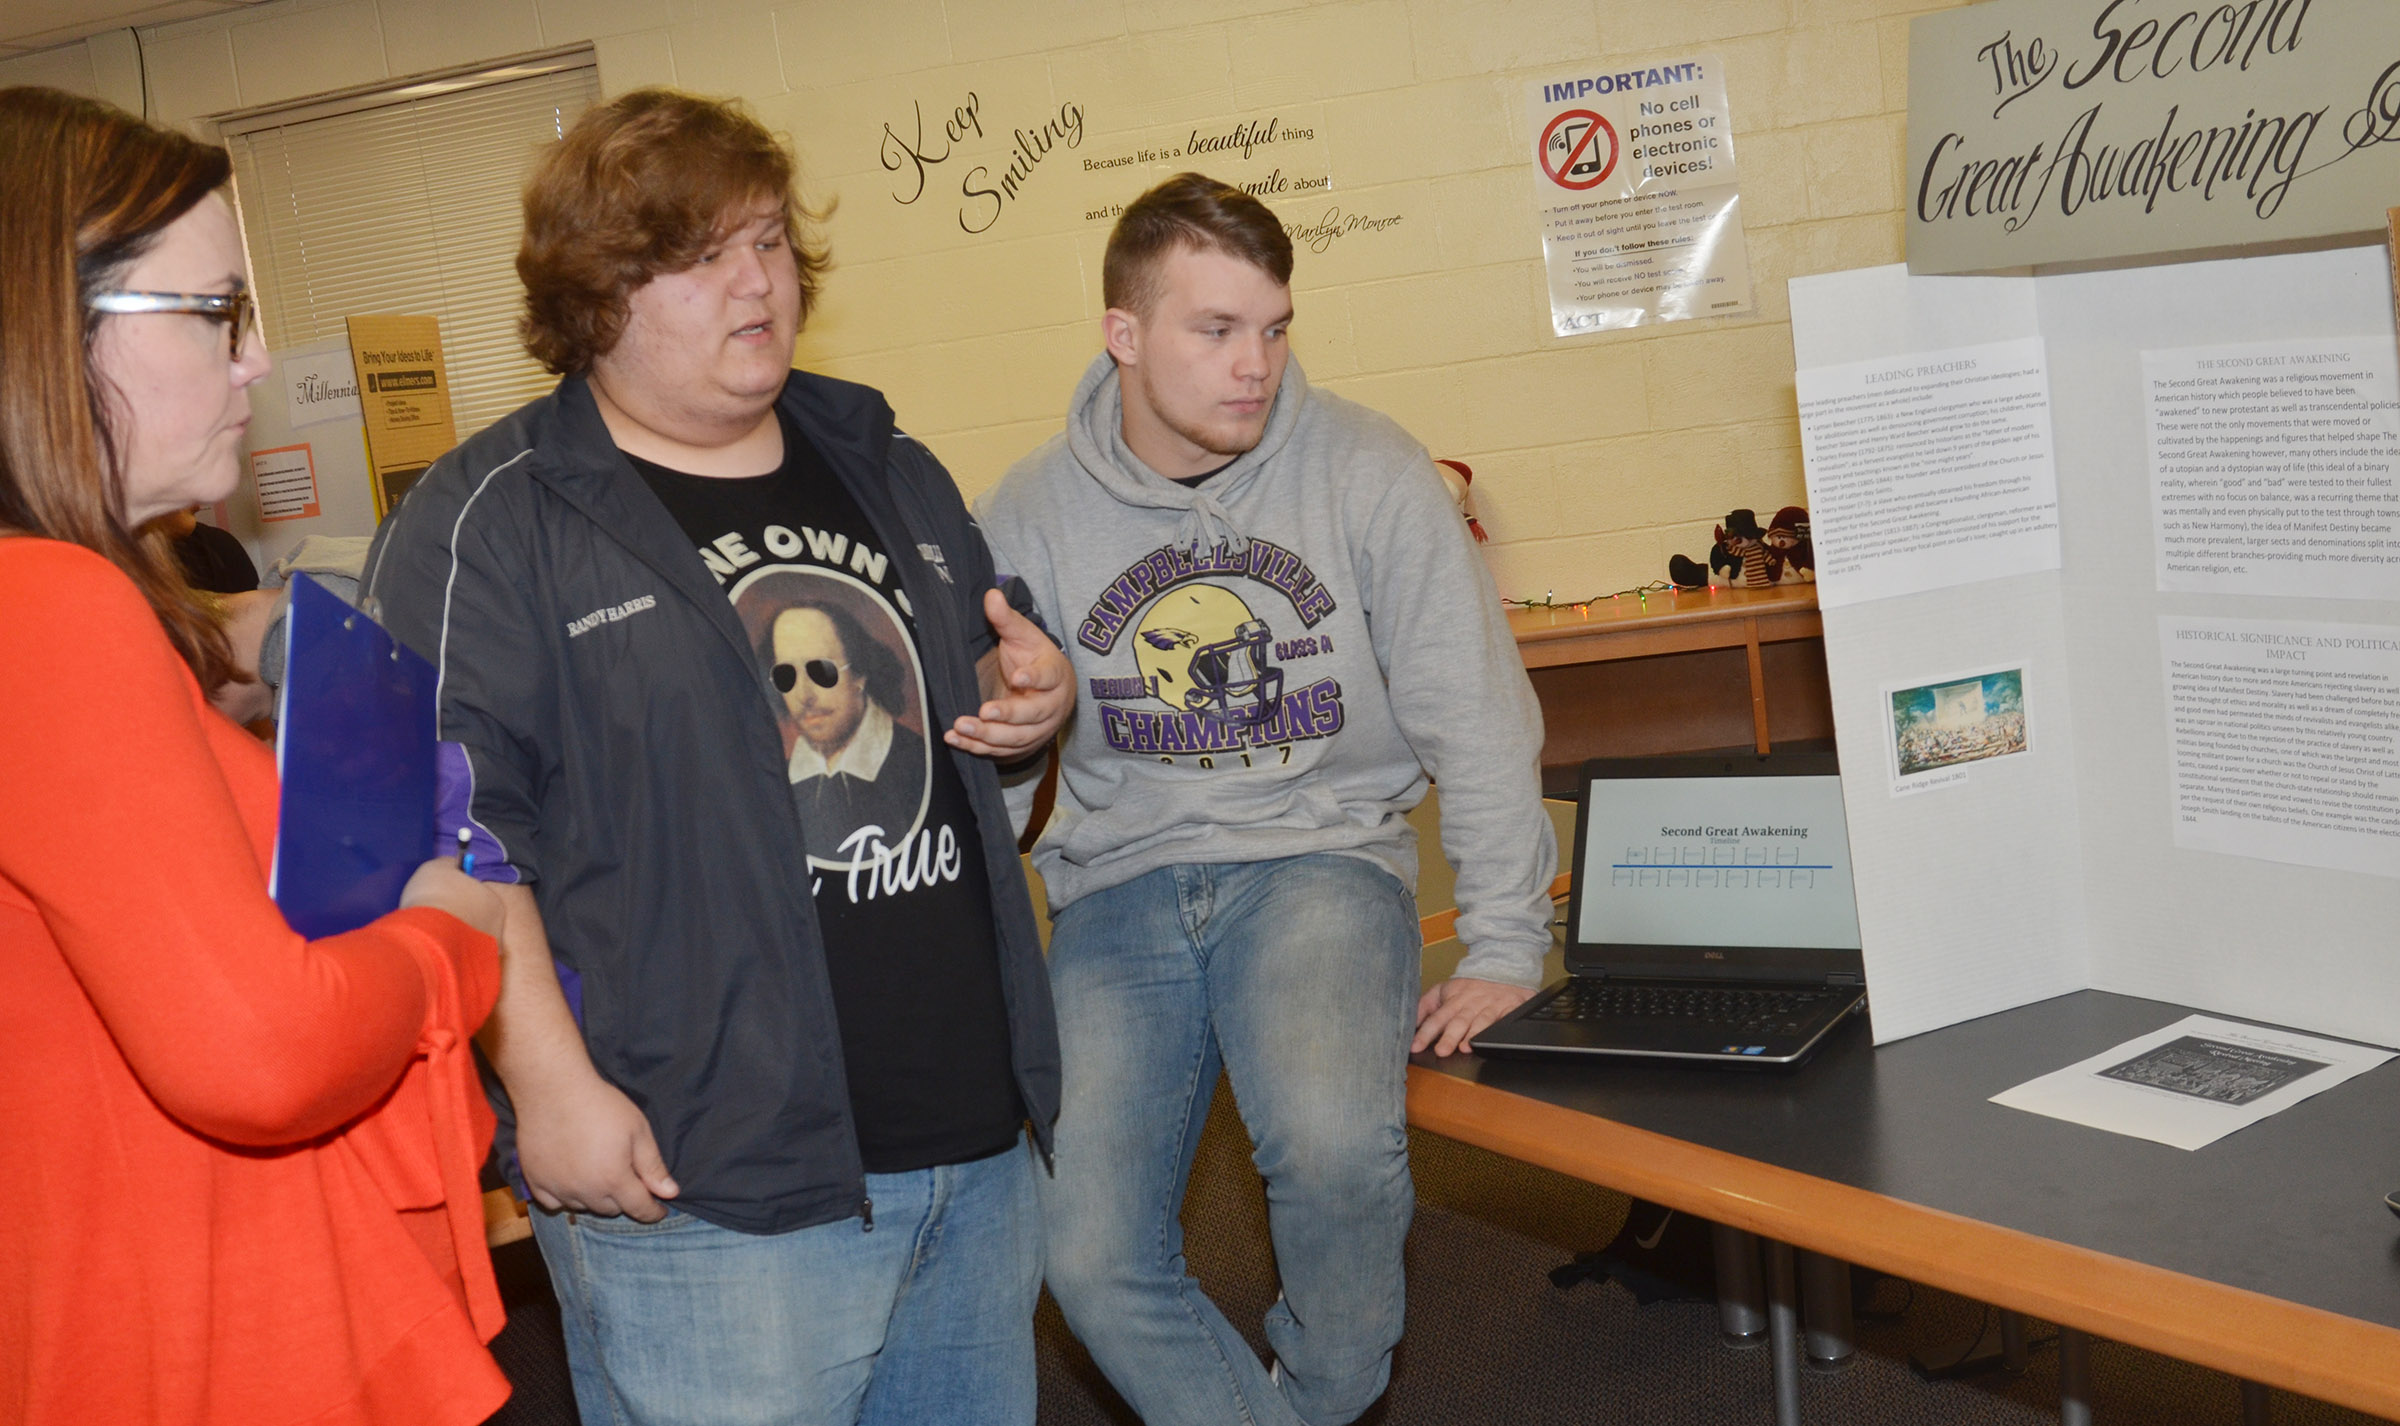 CHS juniors Randy Harris, at left, and Dakota Reardon present about the Second Great Awakening reform movement.